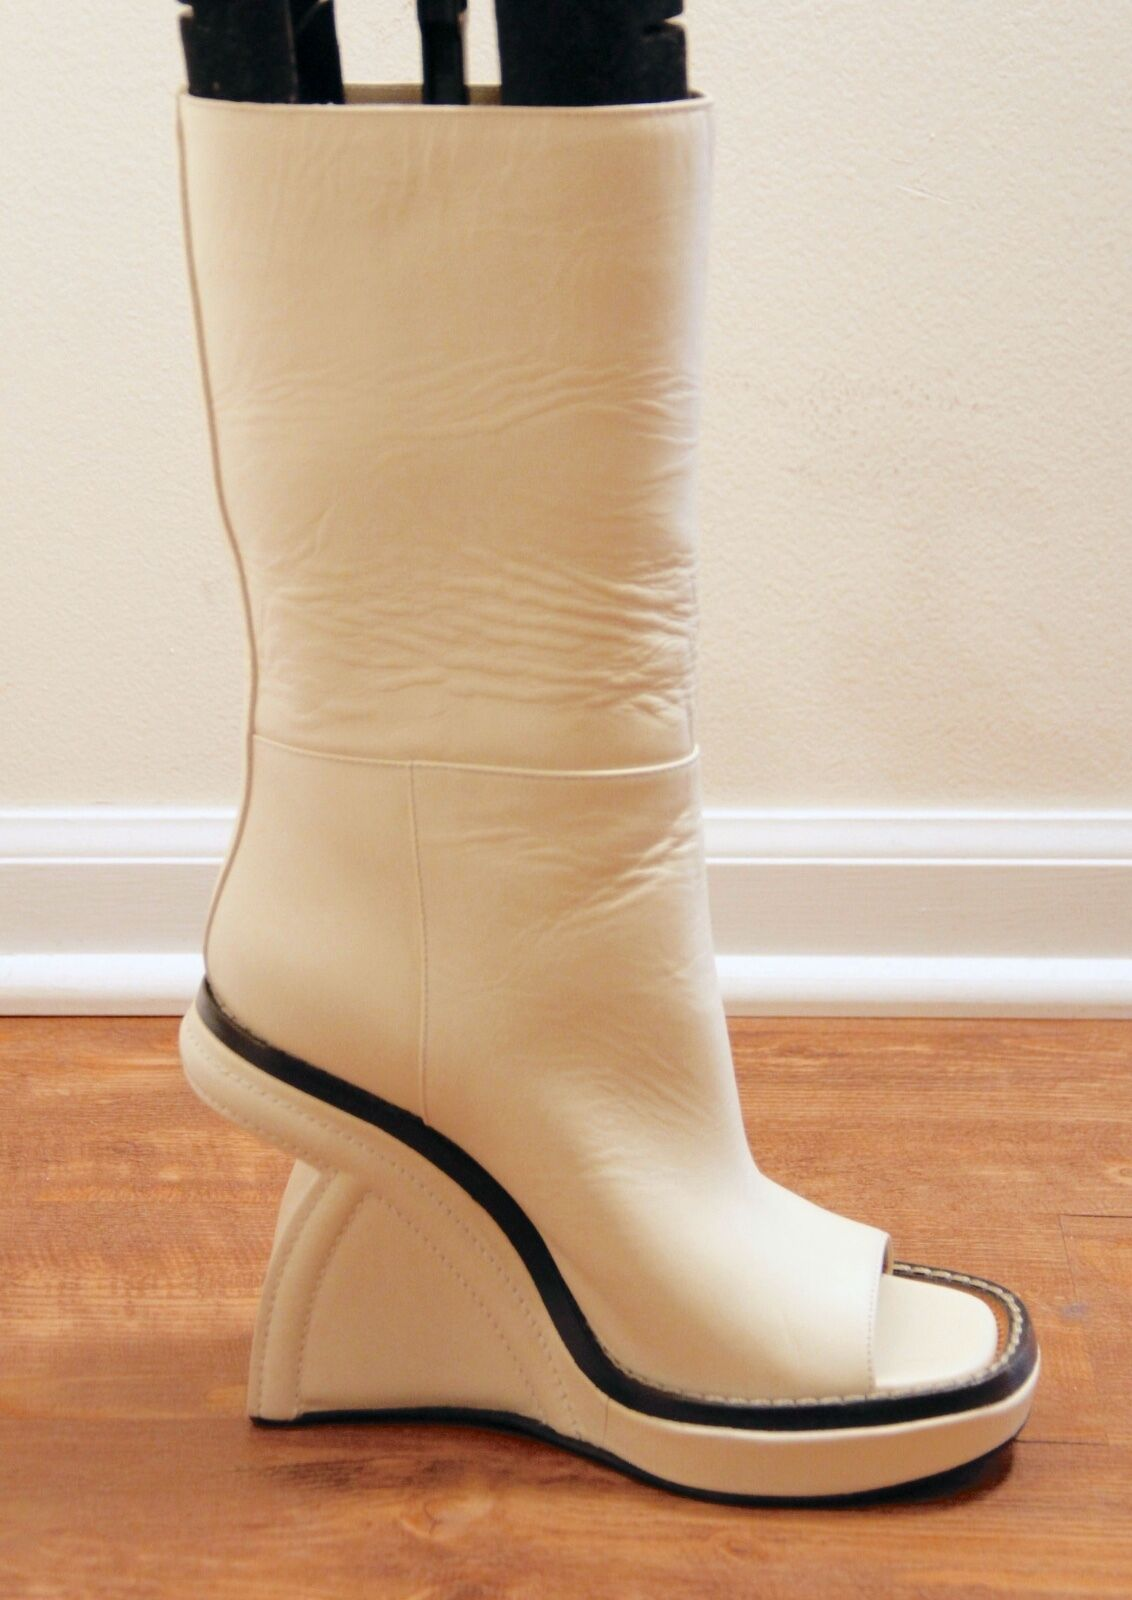 SALE      NEW MARNI  OPEN TOE WEDGE BOOT SHOES IN CREAM LEATHER SIZE 40 NOW 459 460054